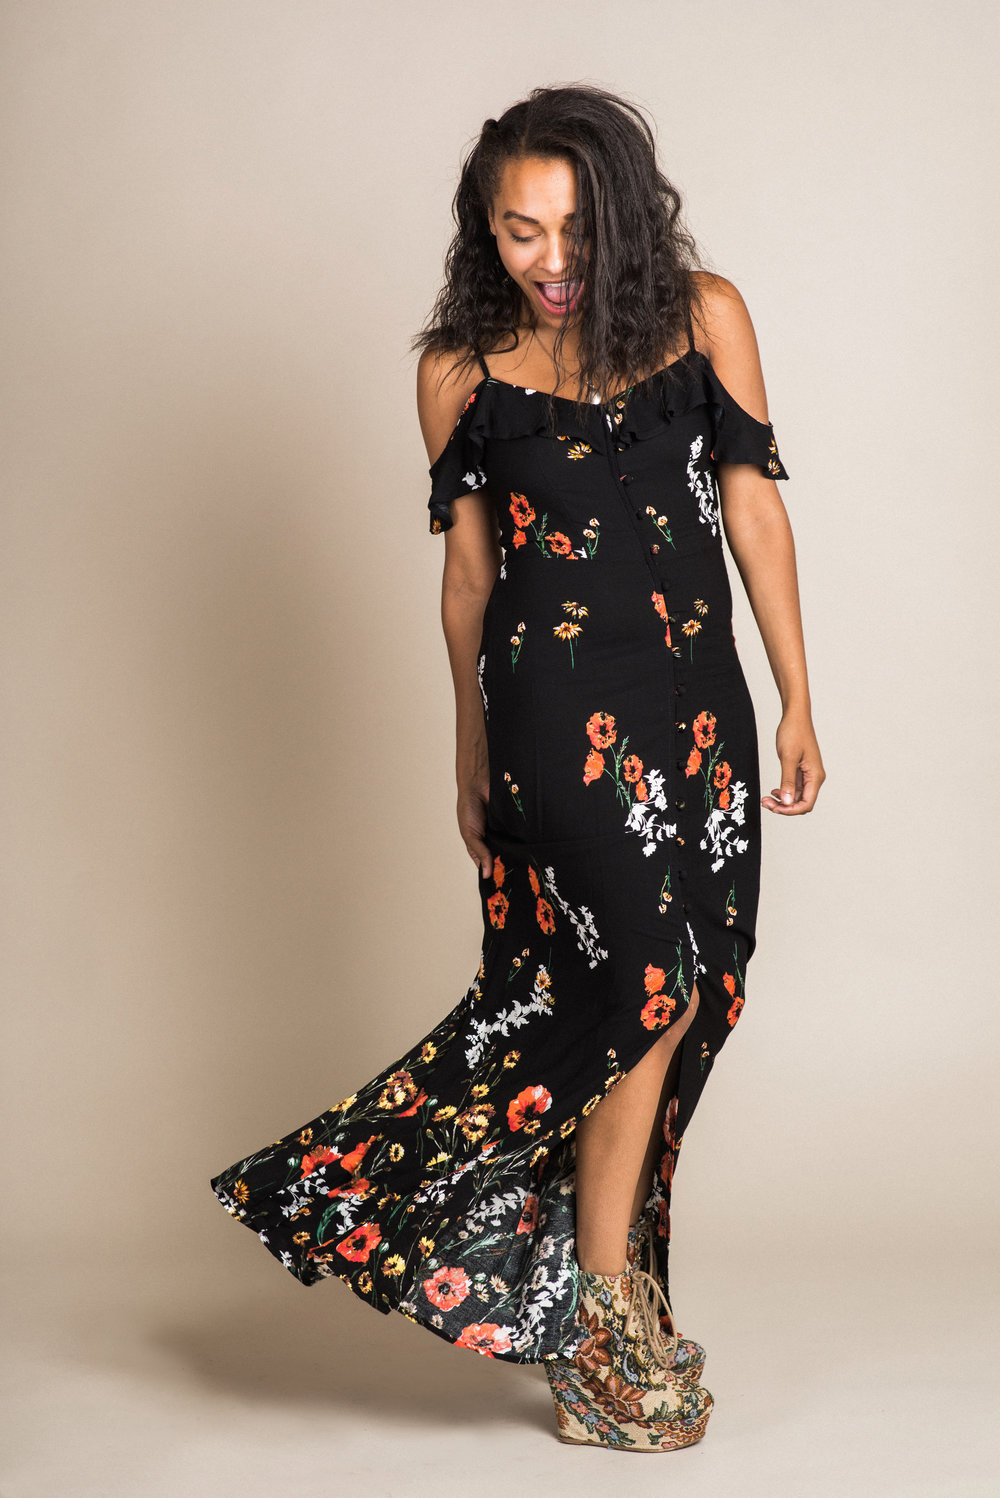 Floral Maxi Dress (S) | Modeled by Naomi